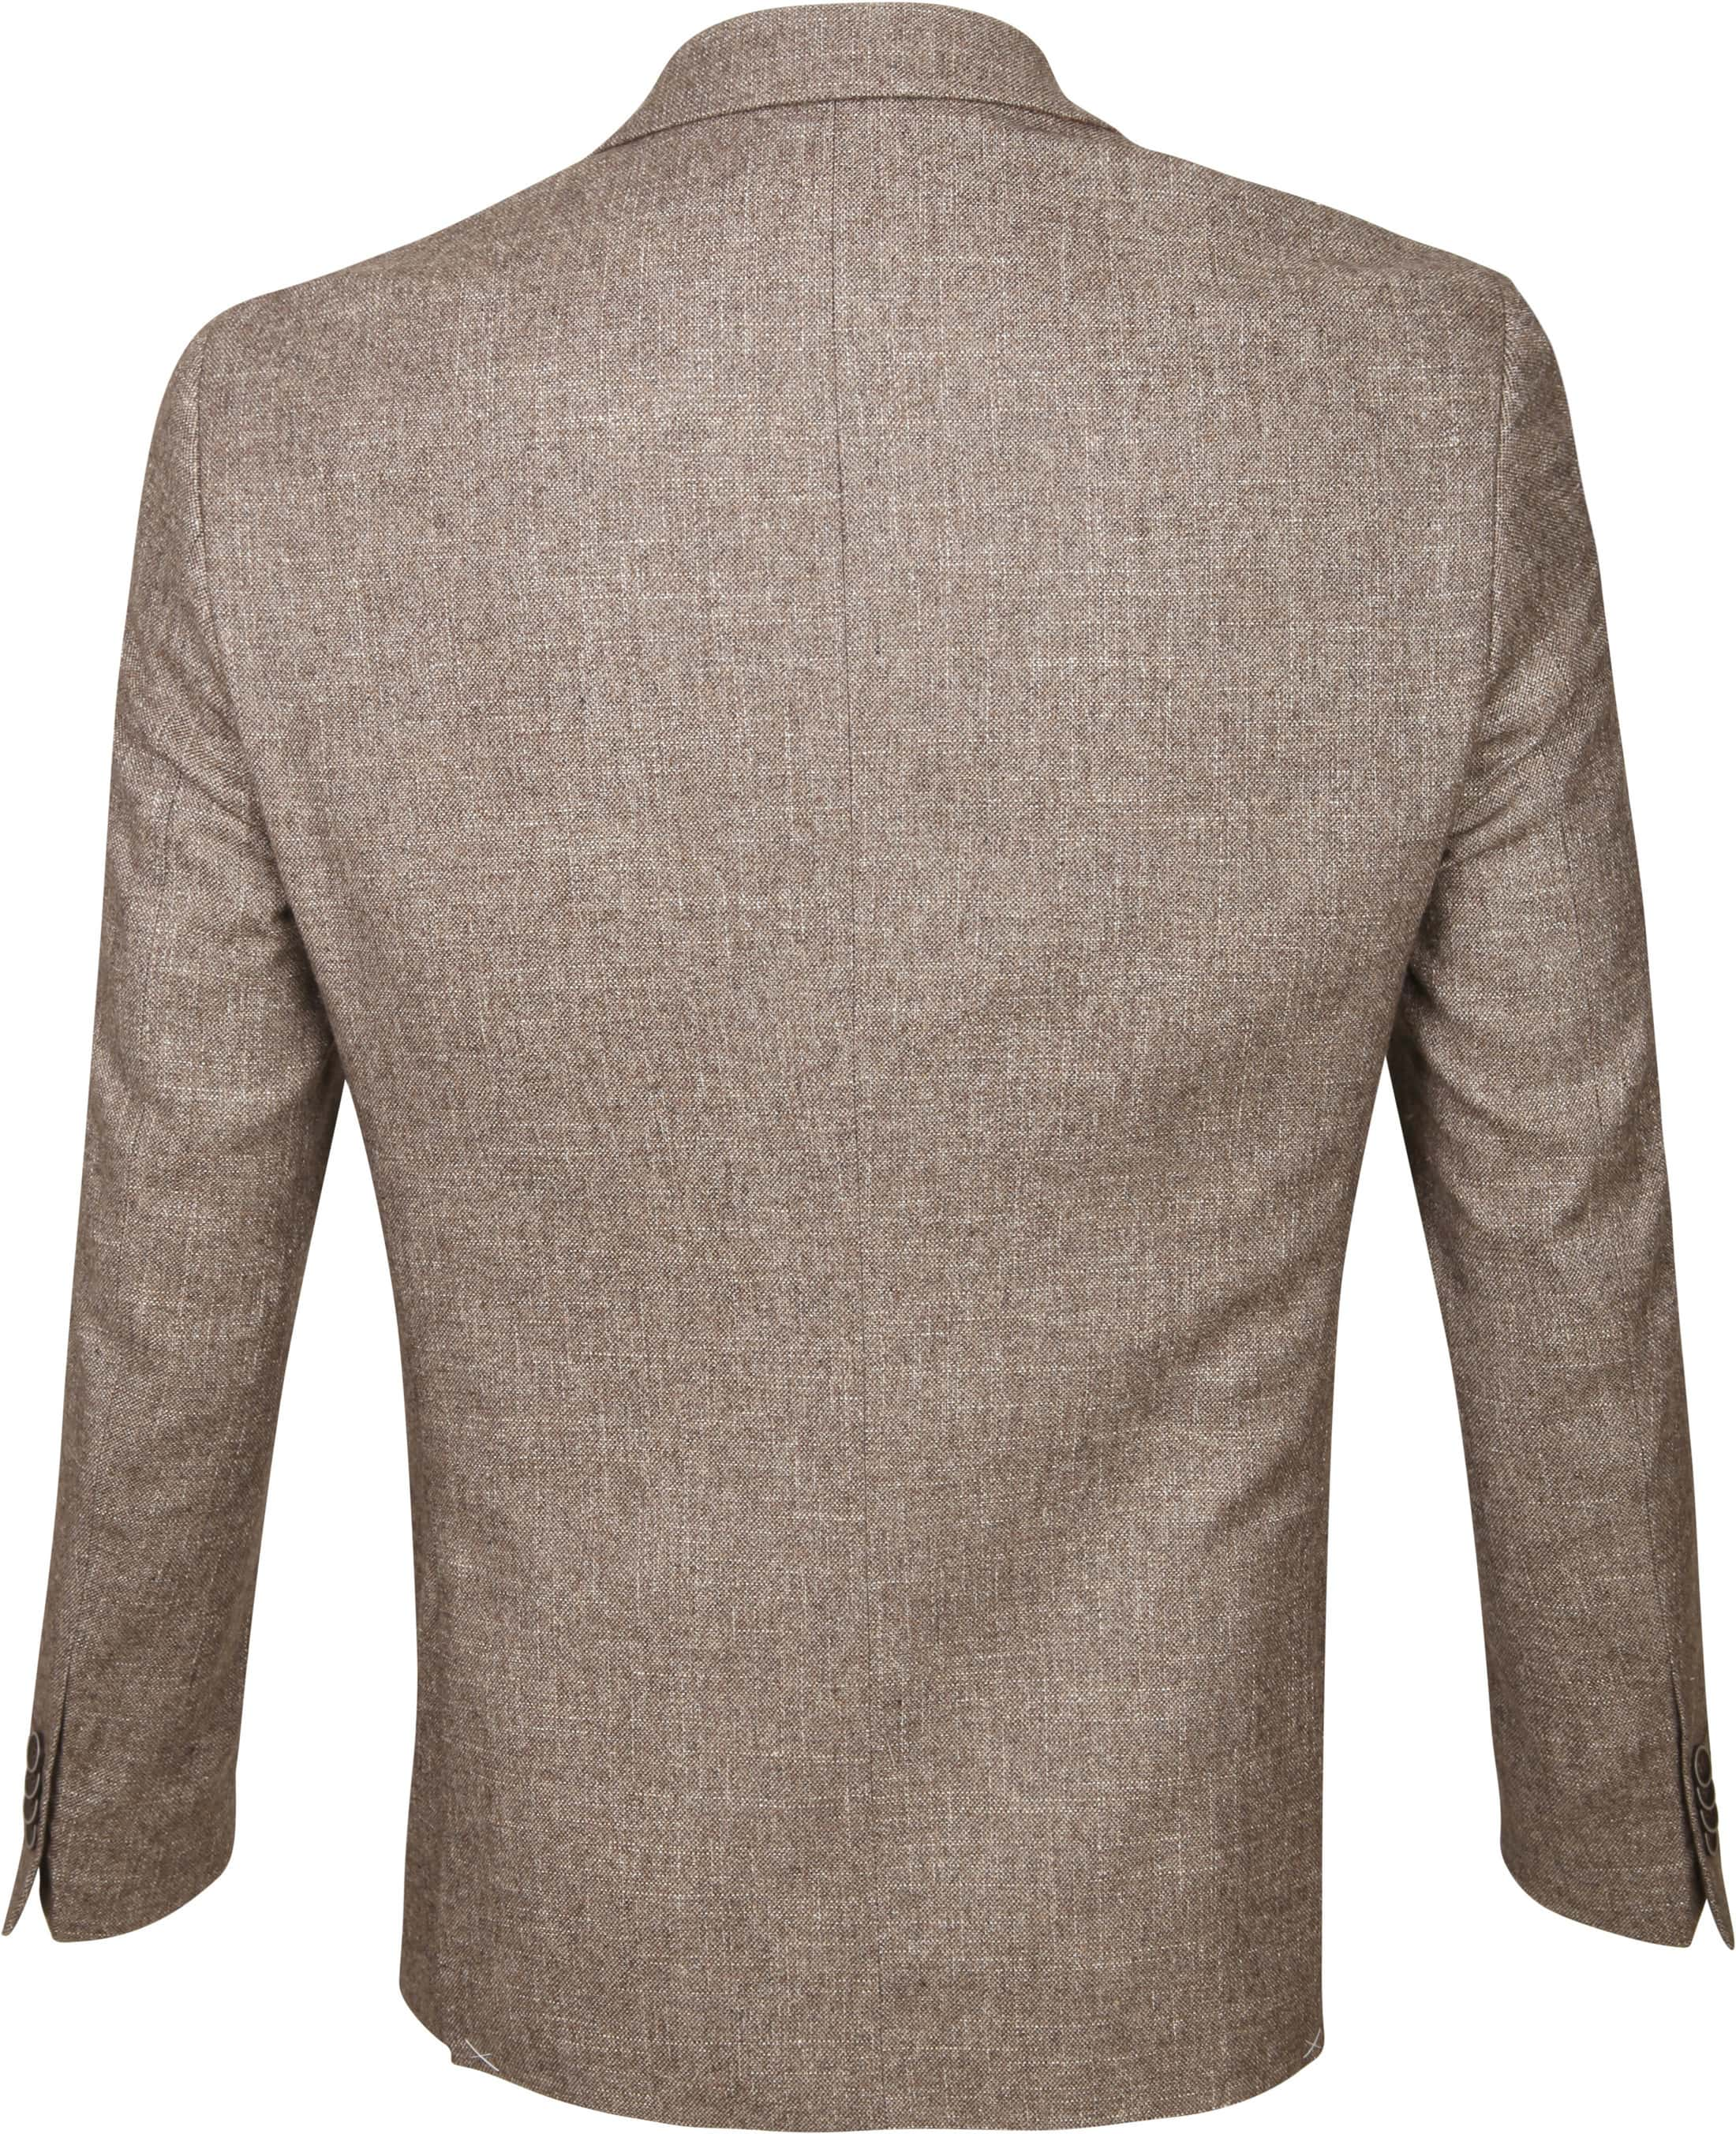 Suitable Blazer Tollegno Camel foto 3